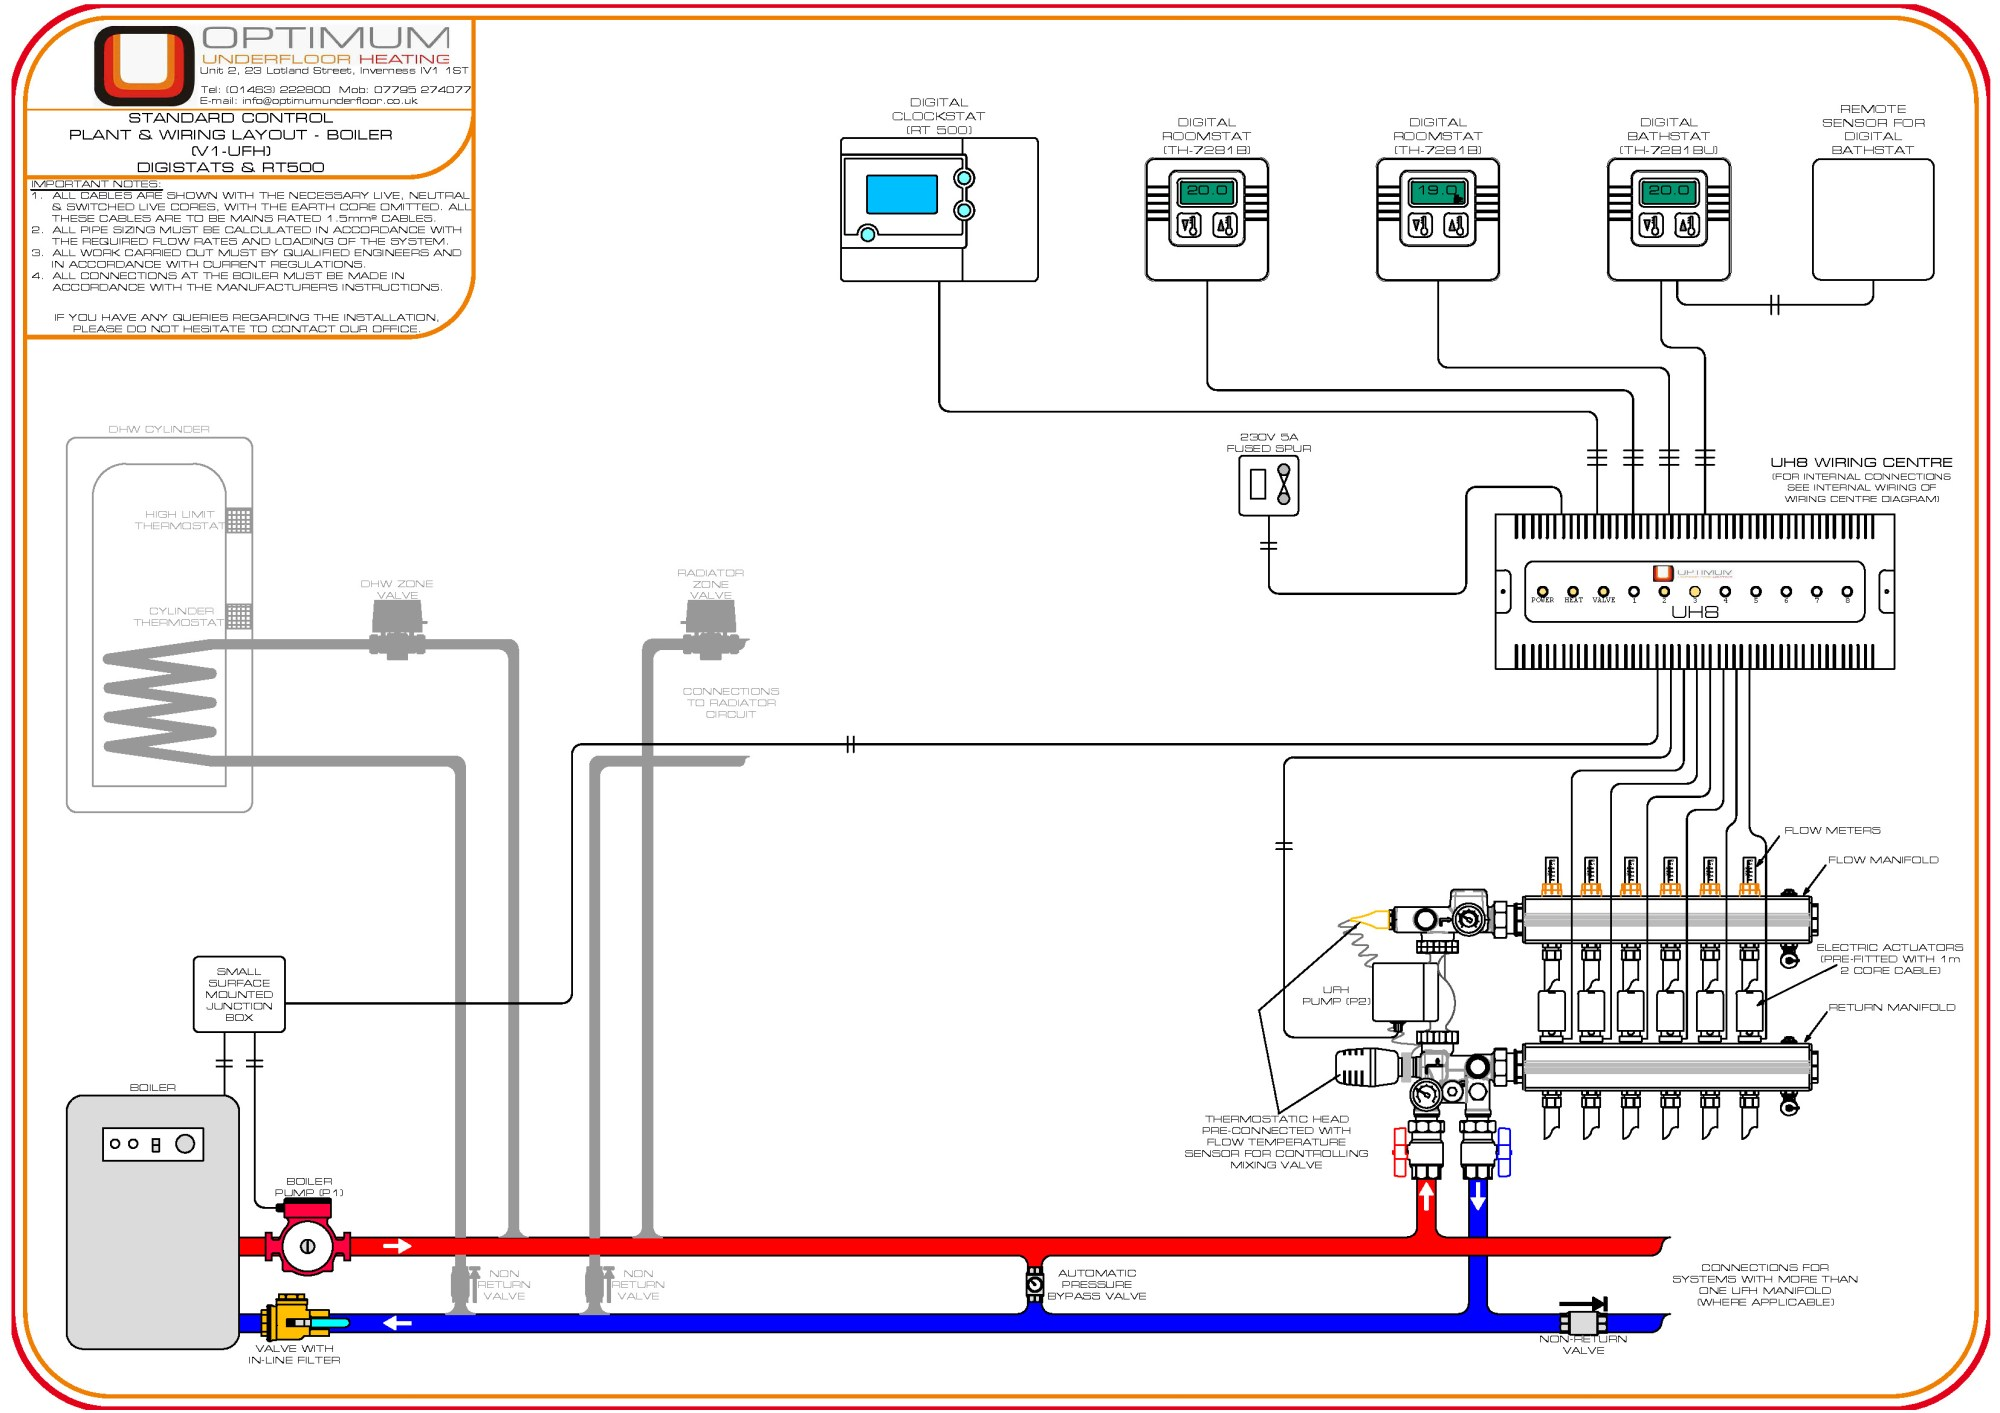 hight resolution of underfloor heating wiring diagram thermostat wiring diagram centre radiant floor heating mats on floor heating diagram underfloor wiring